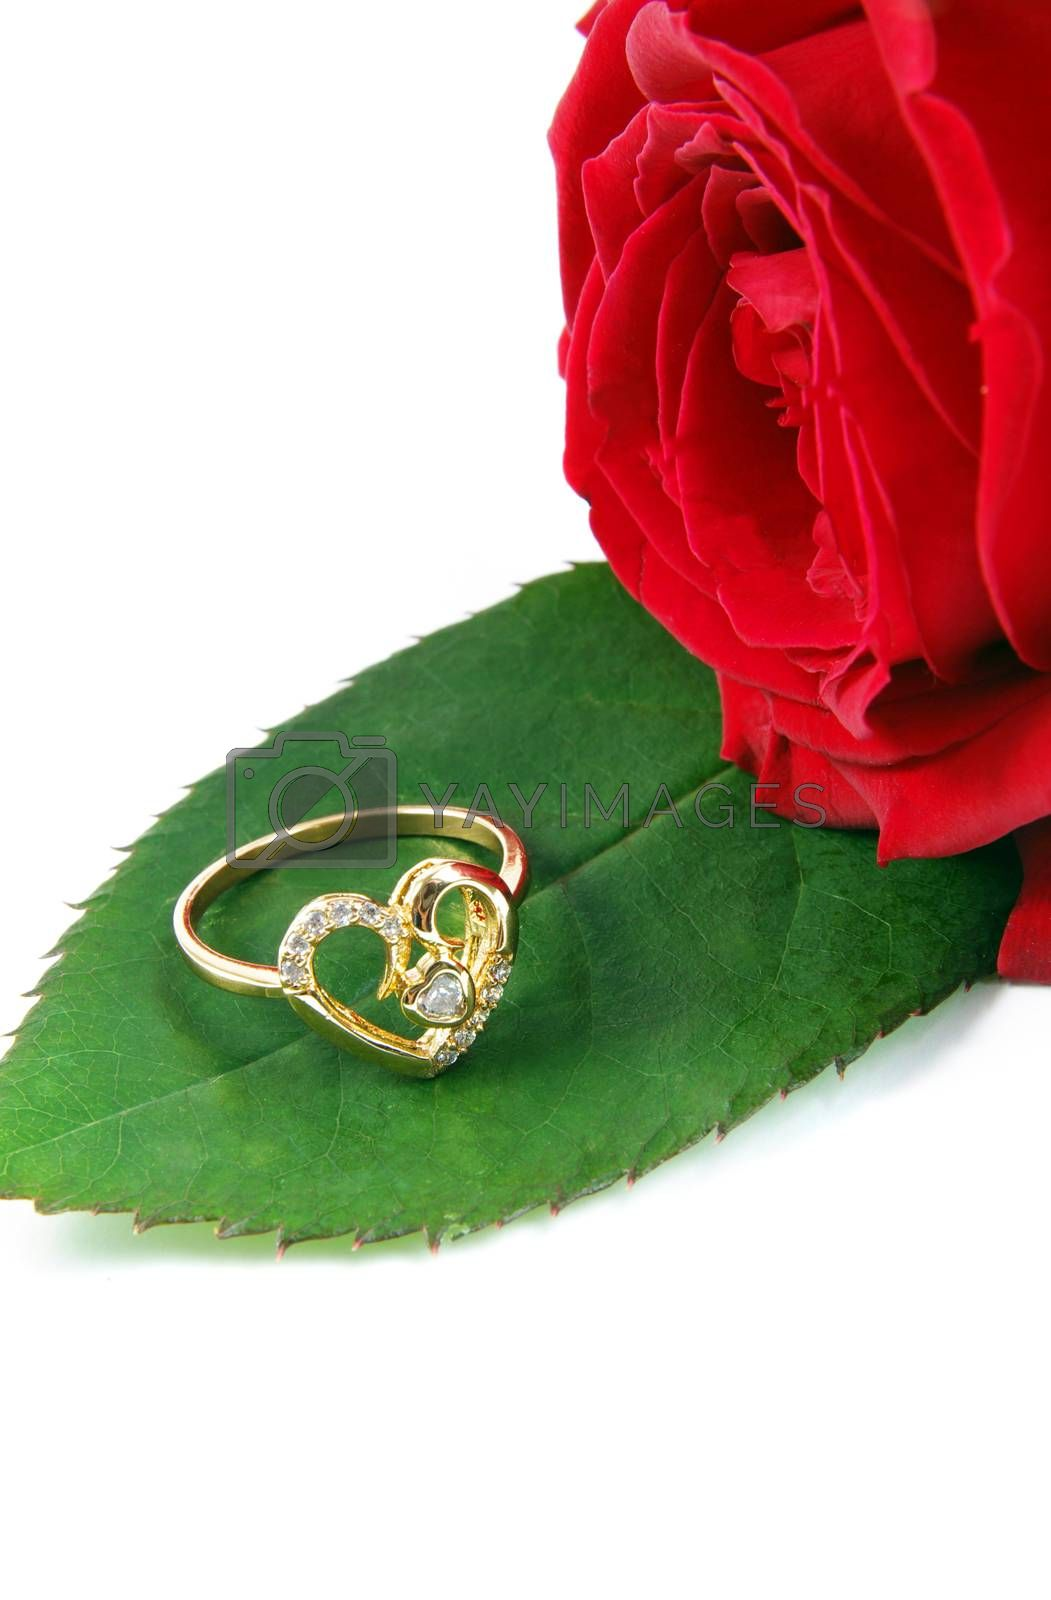 wedding ring with rose over white surface